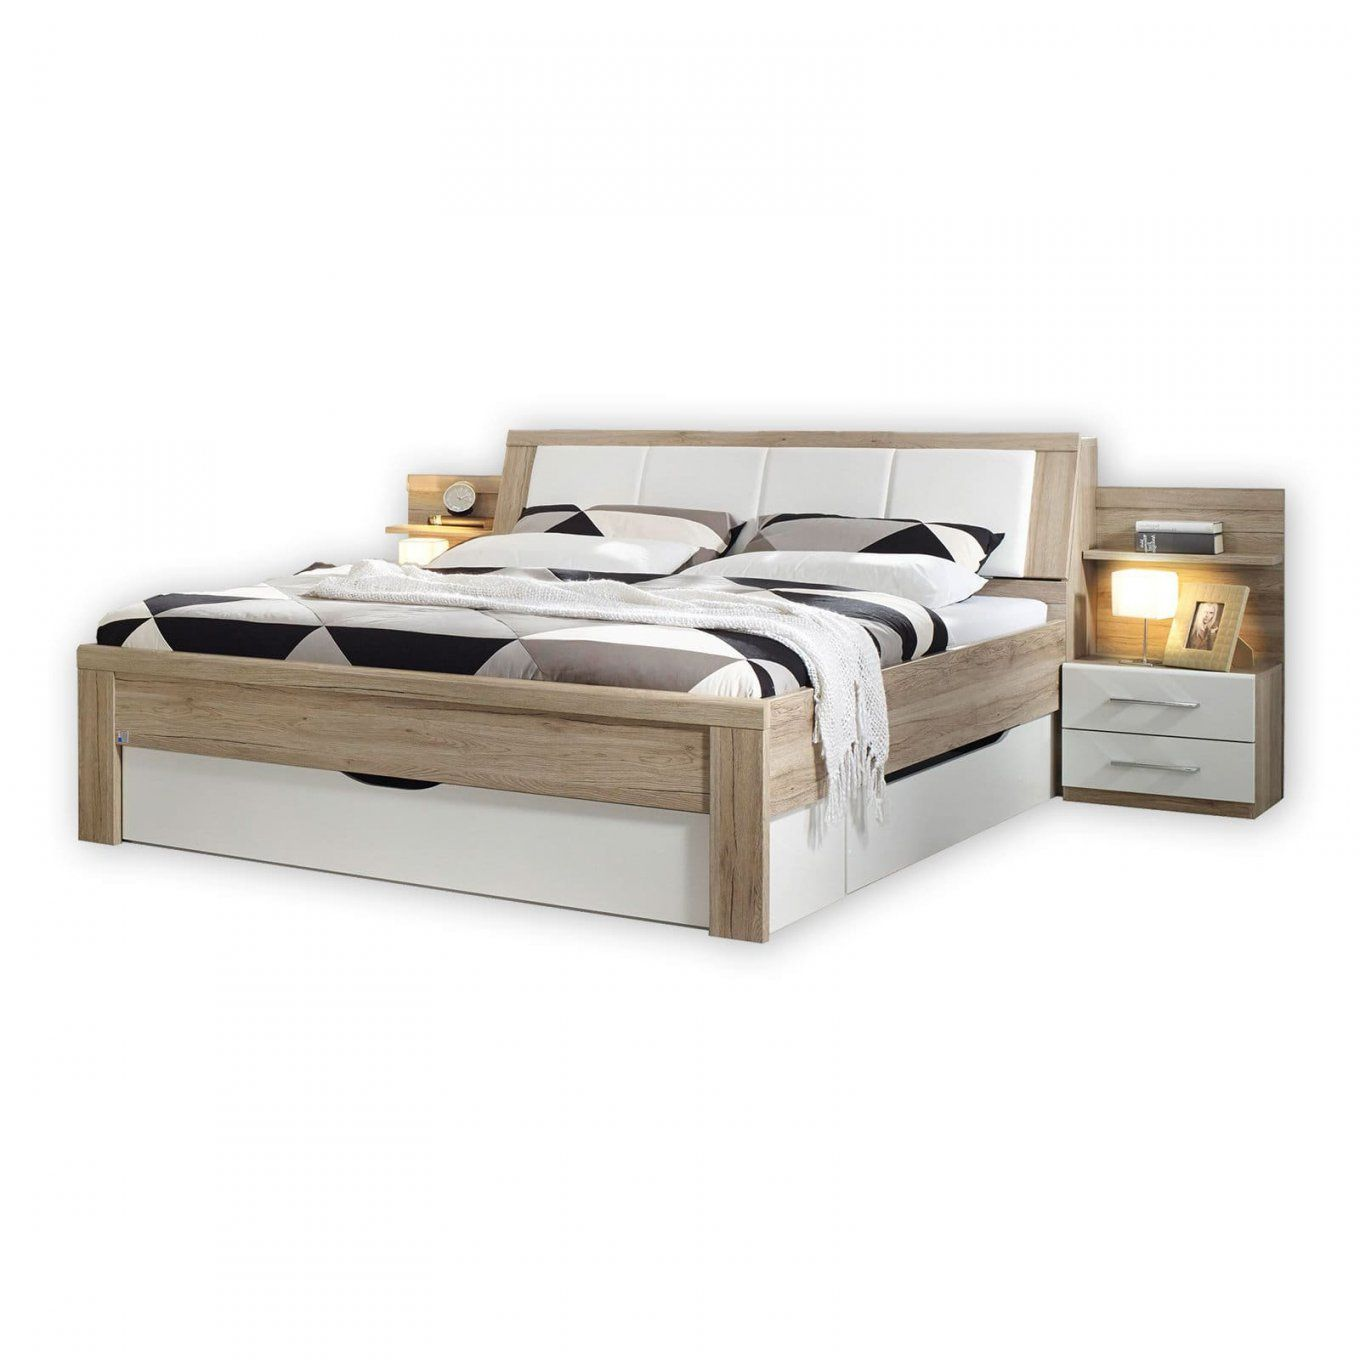 m bel boss boxspringbett angebot haus design ideen. Black Bedroom Furniture Sets. Home Design Ideas